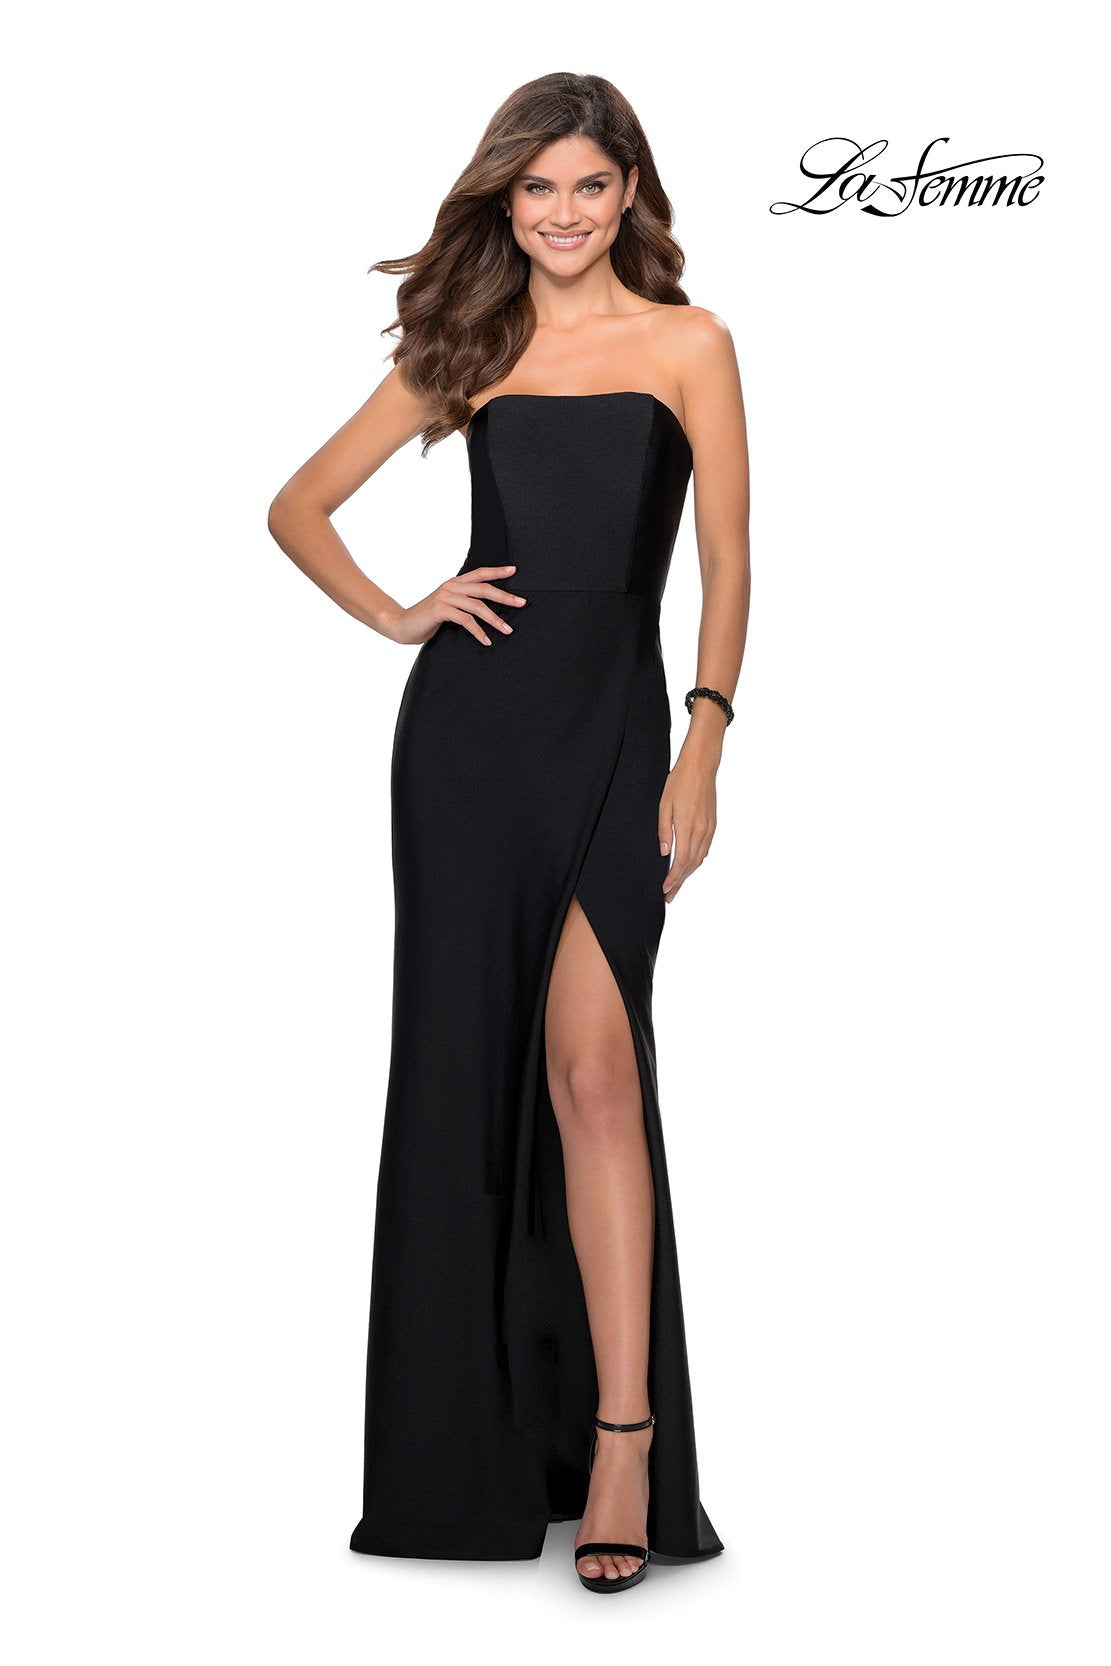 La Femme 28944 prom dress images.  La Femme 28944 is available in these colors: Black, Neon Coral.